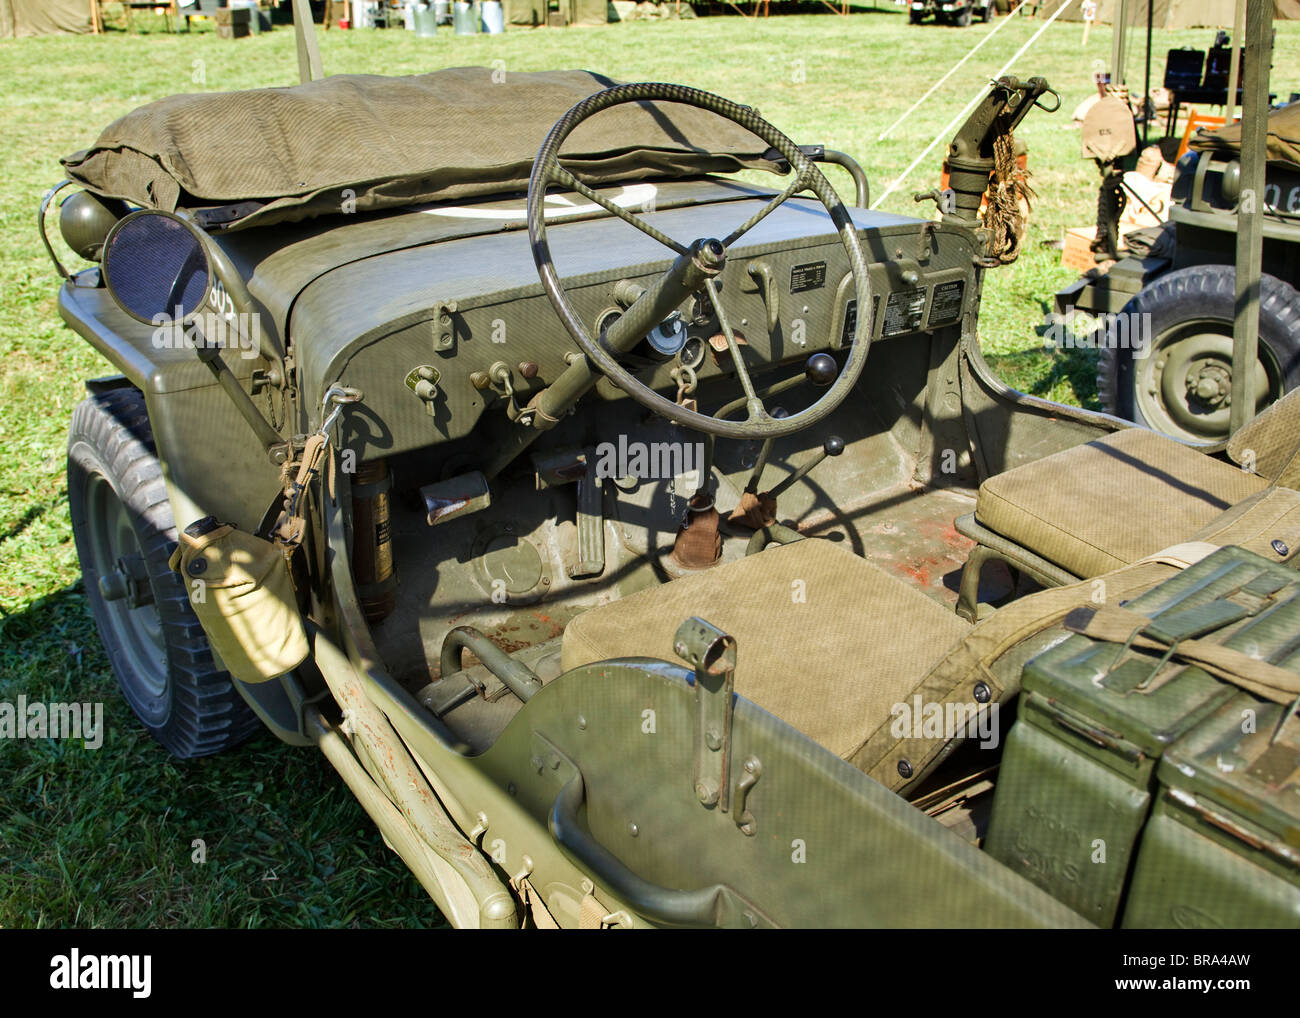 Interior view of wwii era willys us army jeep stock image